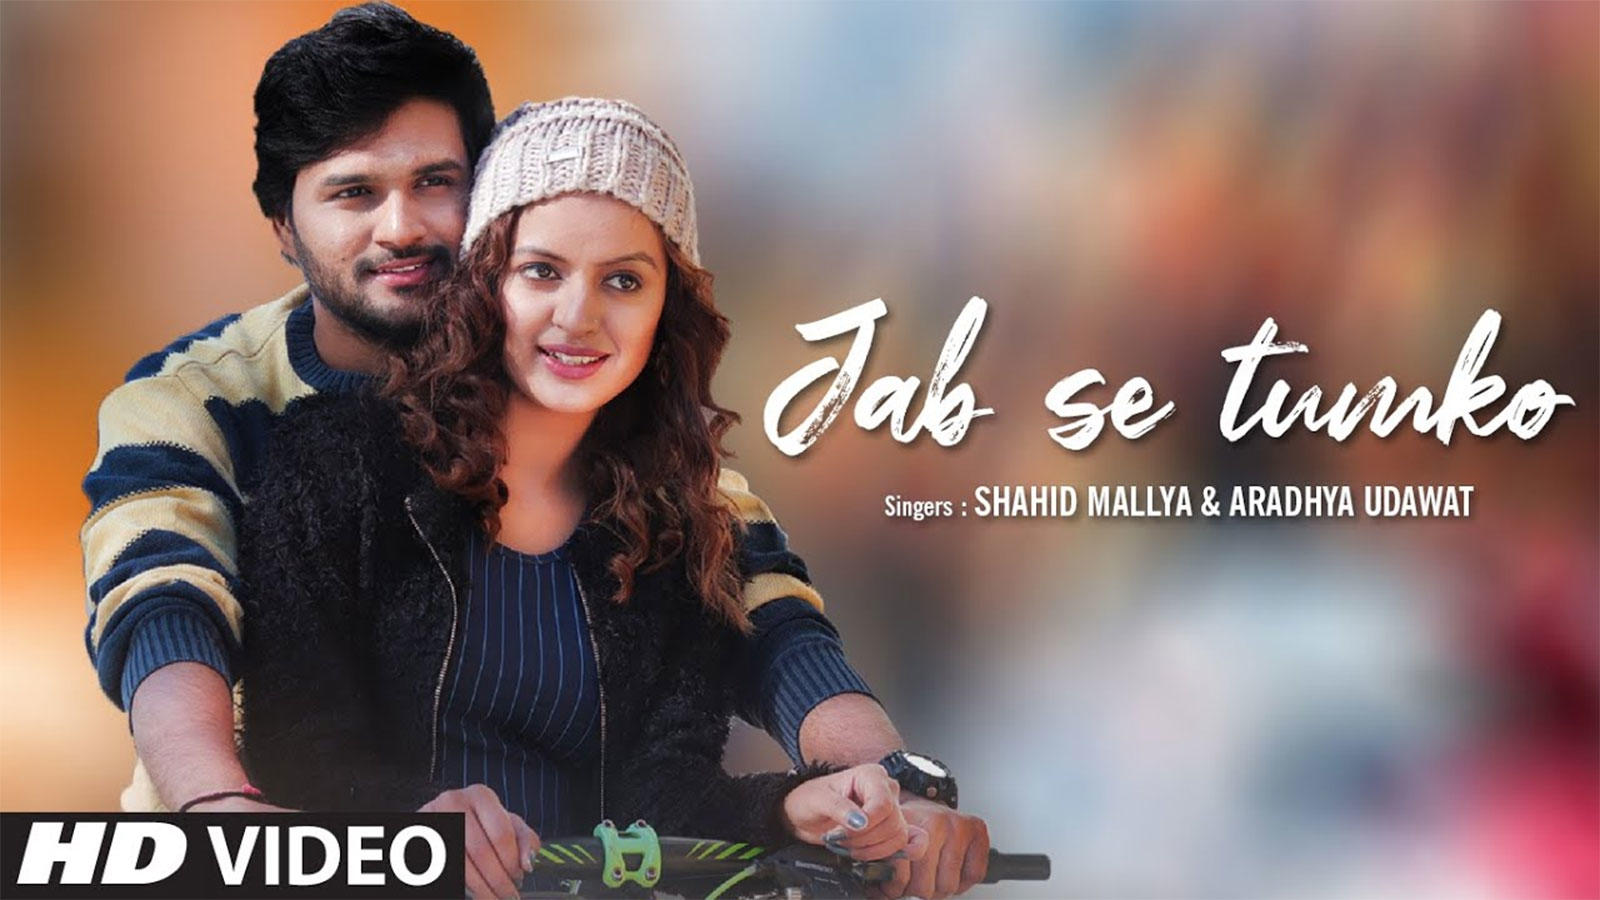 Watch Latest Hindi Music Video Song Jab Se Tumko Sung By Shahid Mallya And Aradhya Udawat Hindi Video Songs Times Of India New songs hindi movies best hits latest album music indian videos playlist bollywood romantic love. watch latest hindi music video song jab se tumko sung by shahid mallya and aradhya udawat